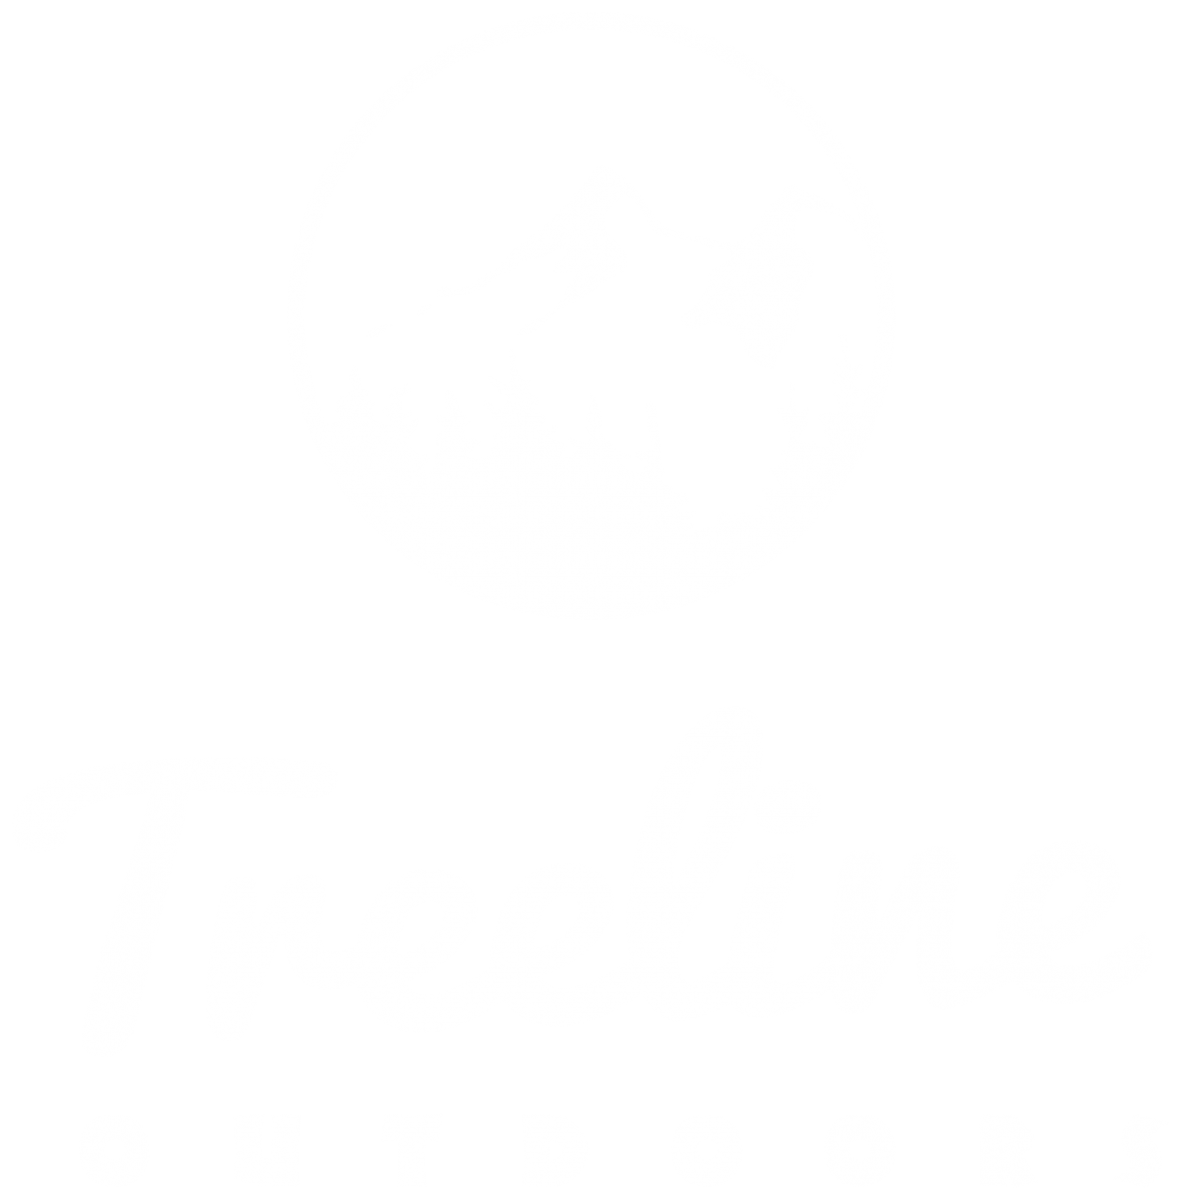 Treeline Outdoors logo by Hank White Co.